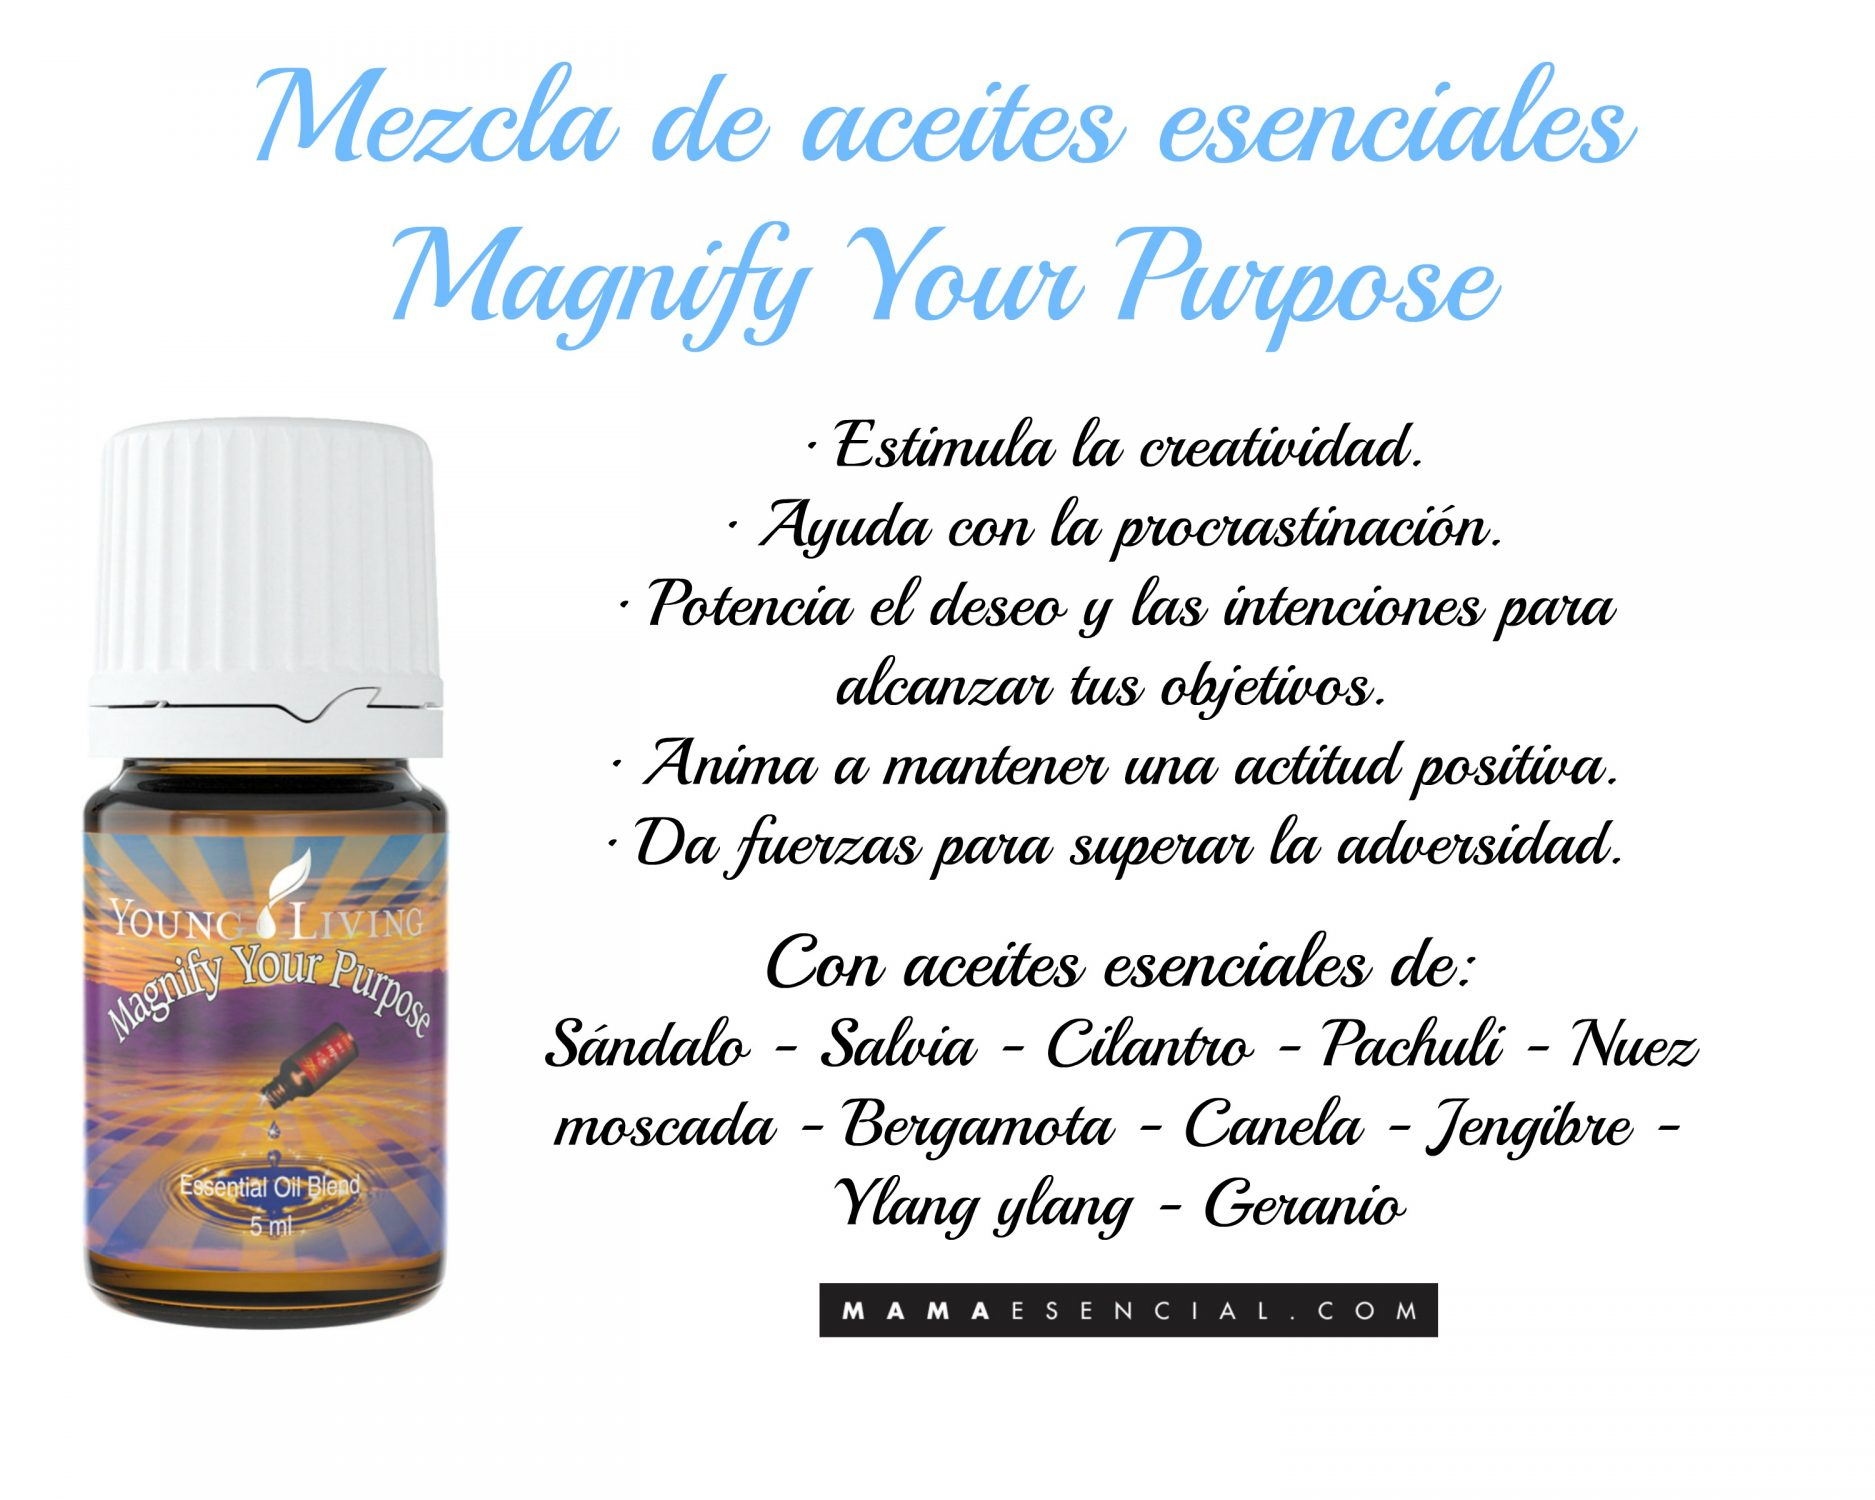 MAGNIFY YOUR PURPOSE de Young Living